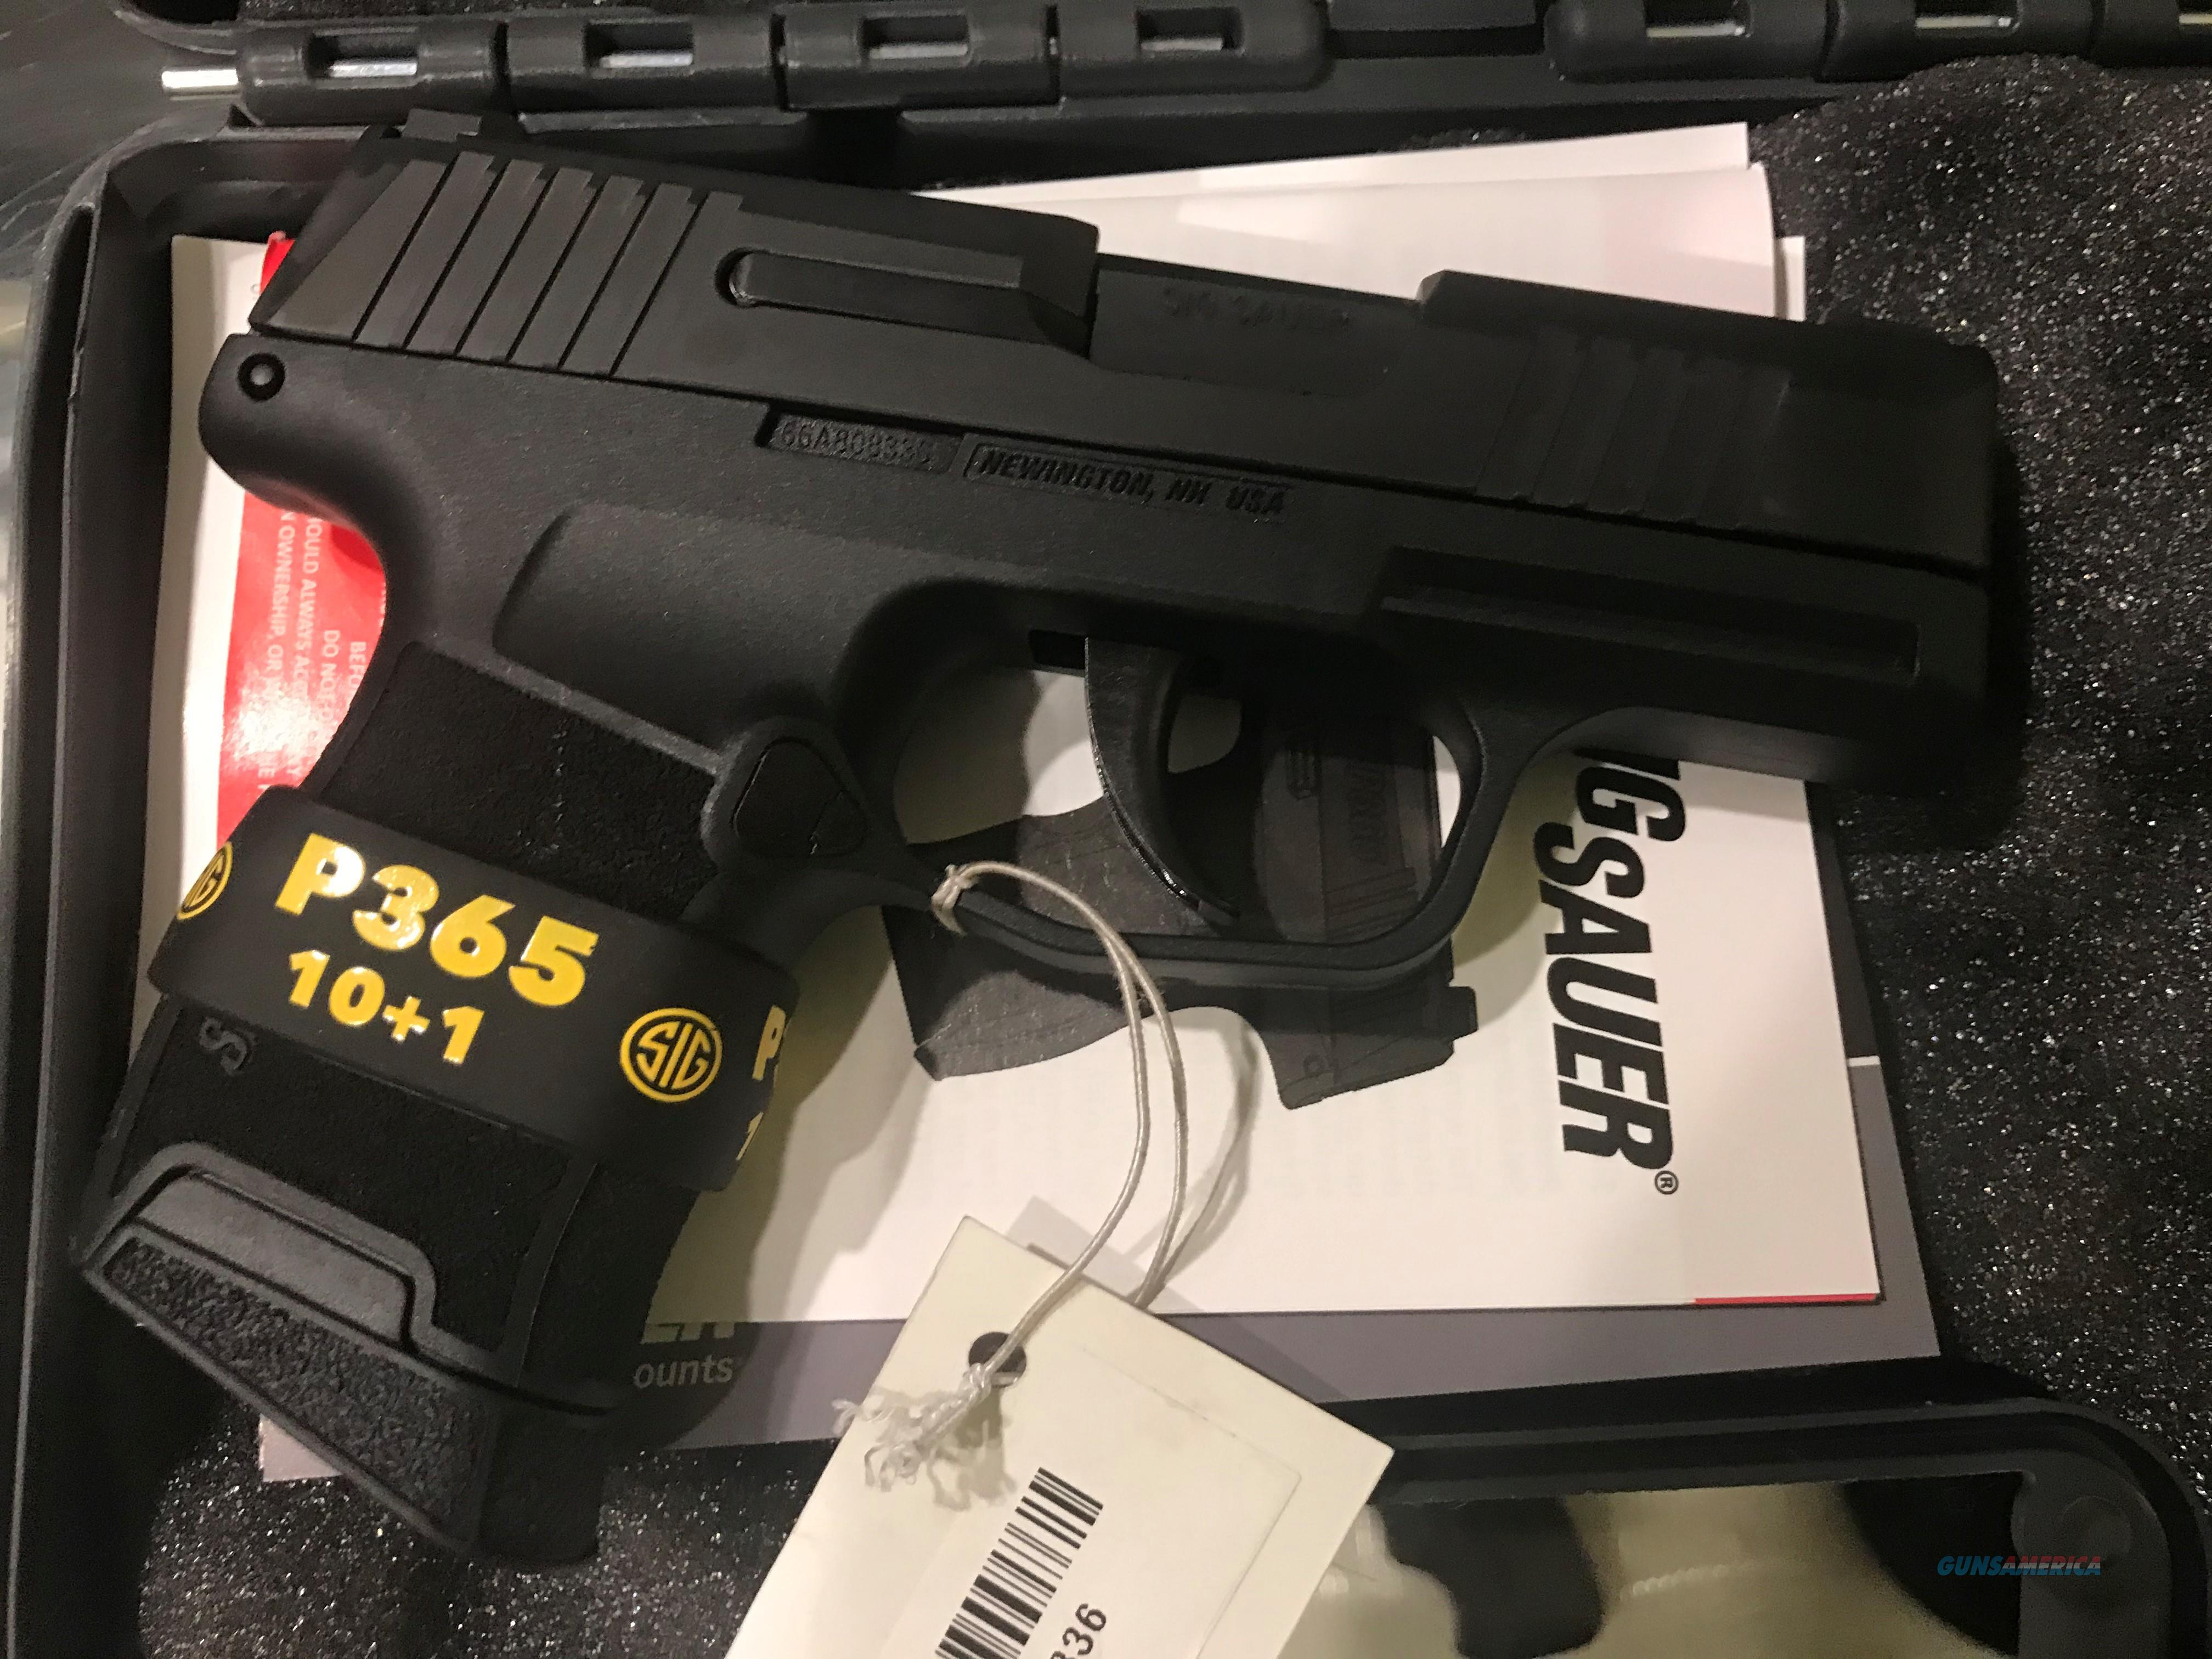 Sig Sauer P365 X-RAY3 Night Sights 10+1 round magazine 9mm Compact Sig P 365 New in case (No card fees added at Deals on Guns)  Guns > Pistols > Sig - Sauer/Sigarms Pistols > P365